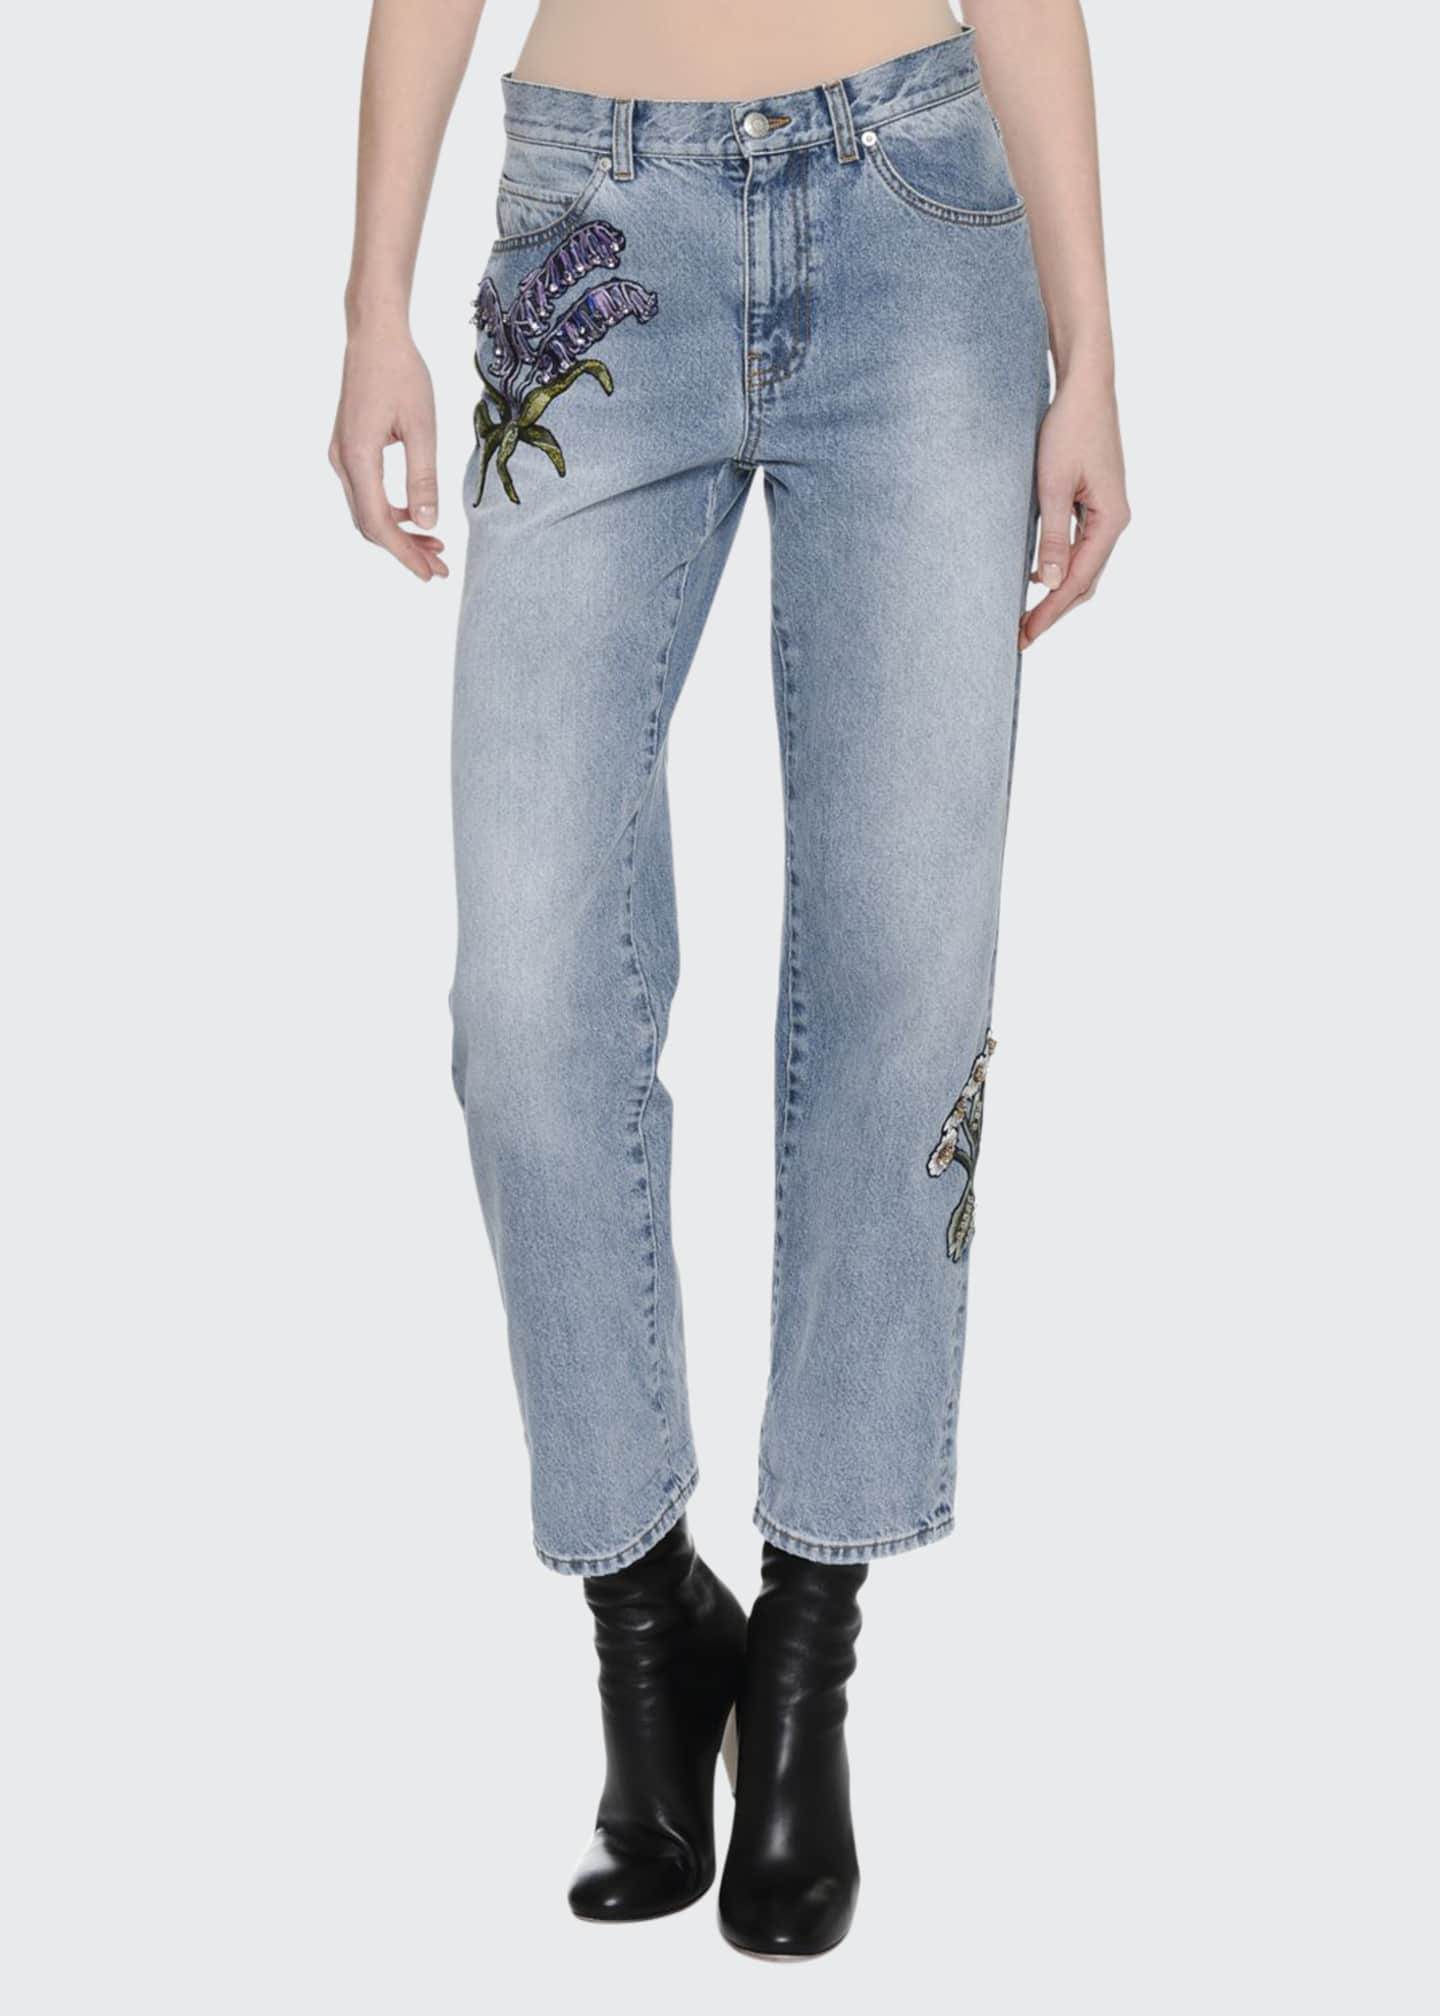 Alexander McQueen Embroidered Denim Ankle Jeans, Blue